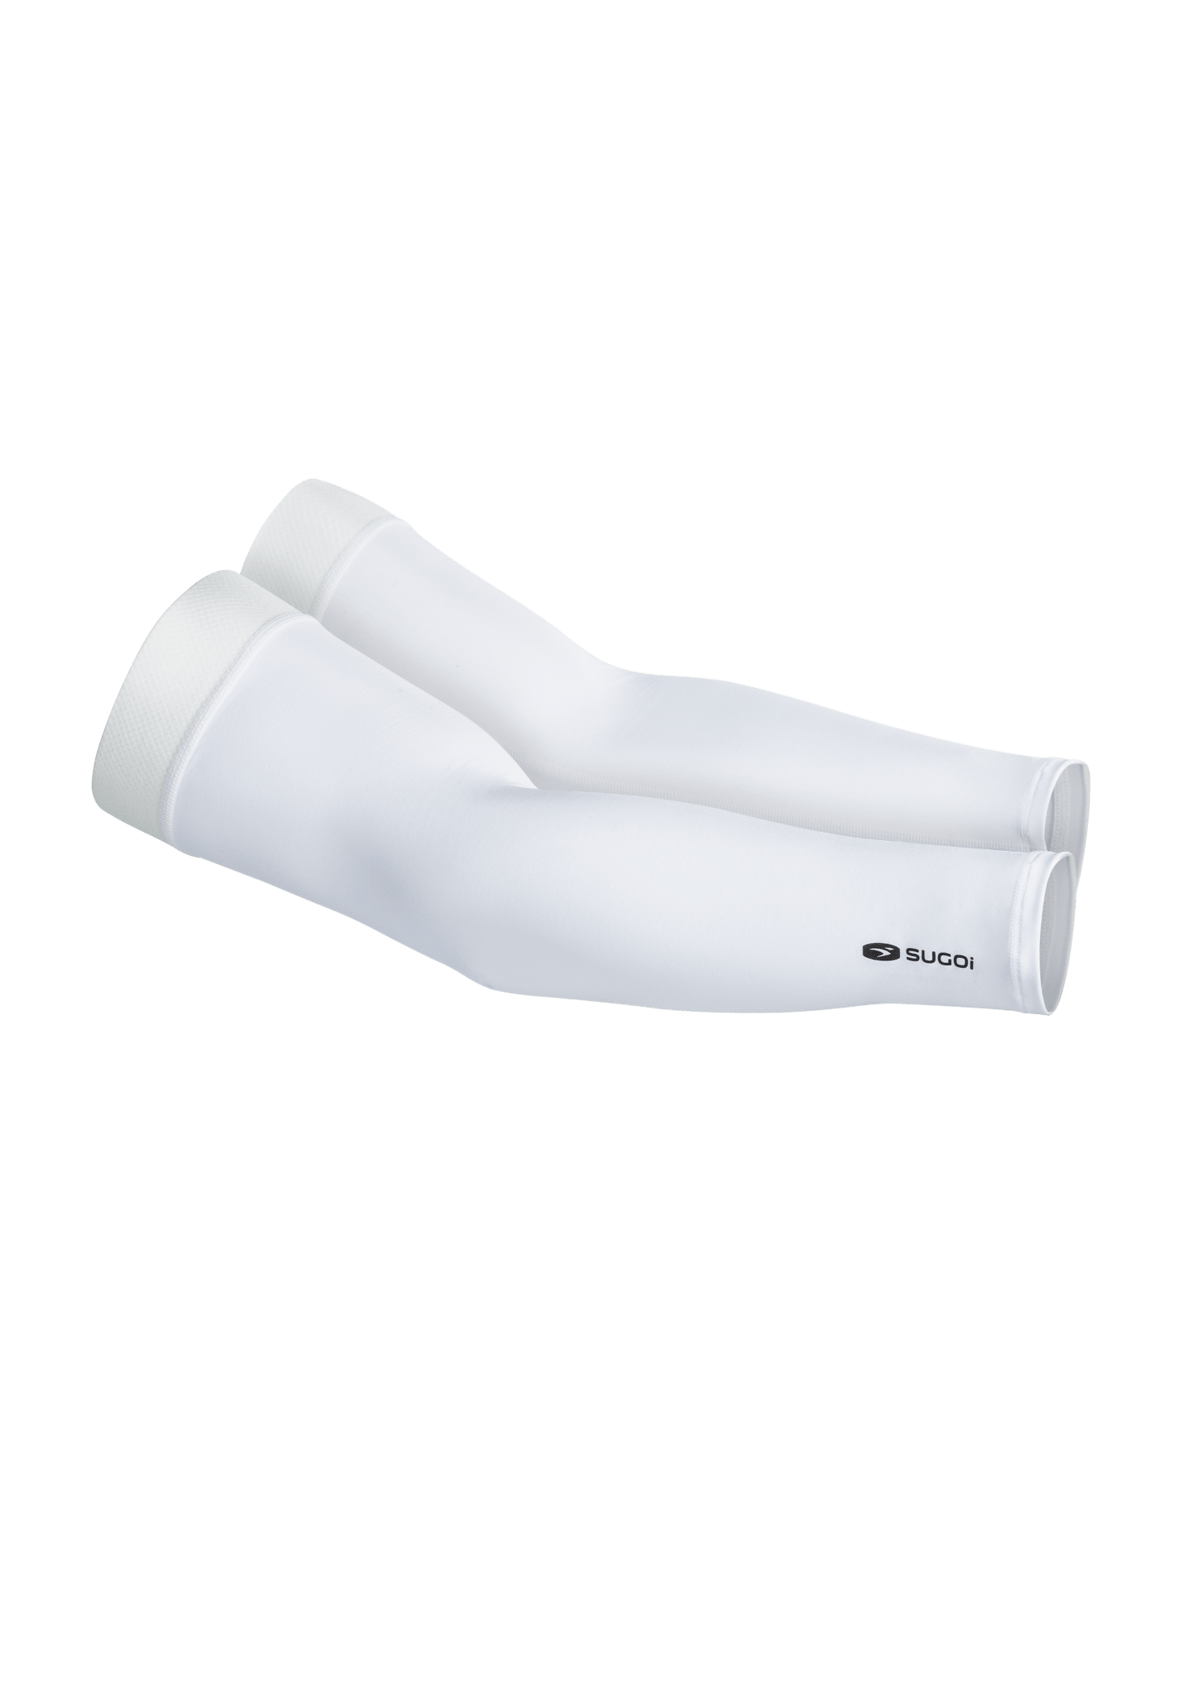 Sugoi MidZero Adult Arm Warmers